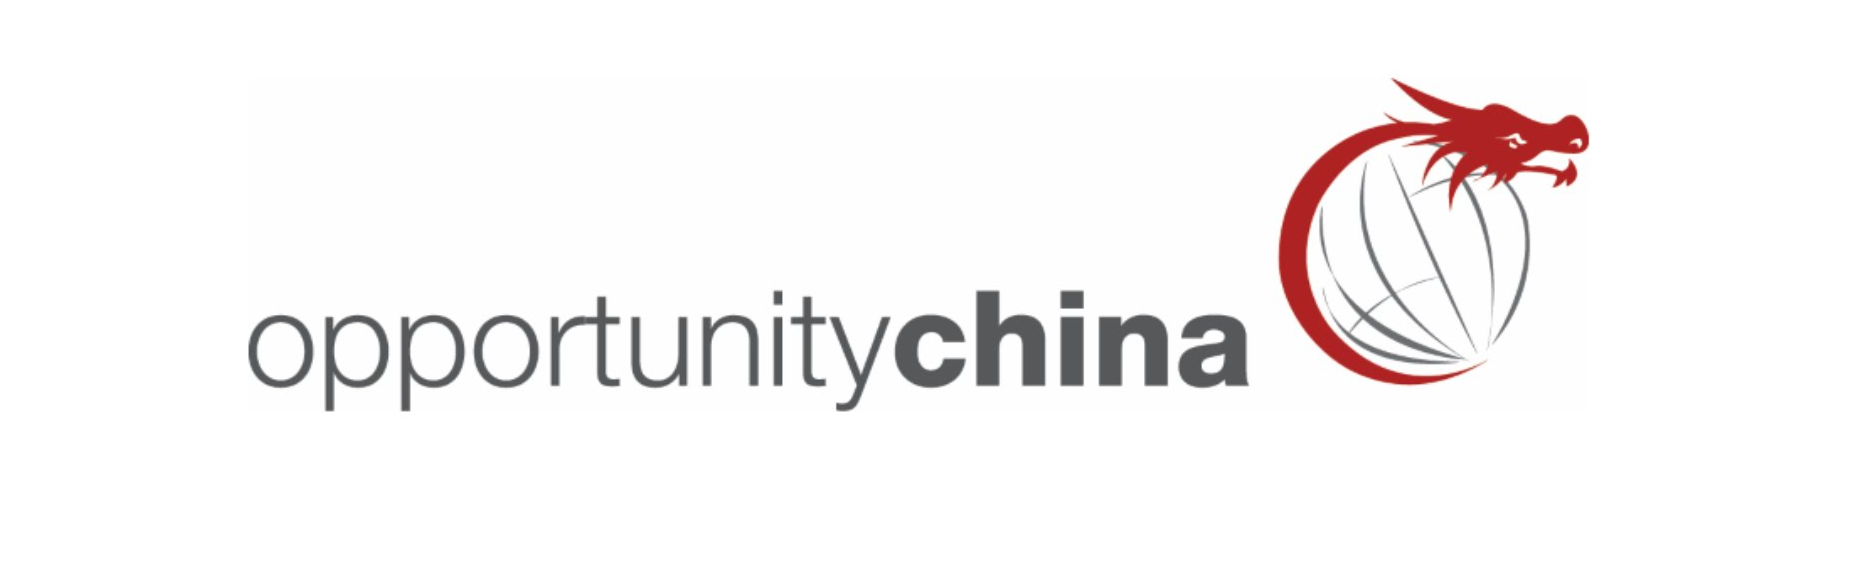 Opportunity China profile banner